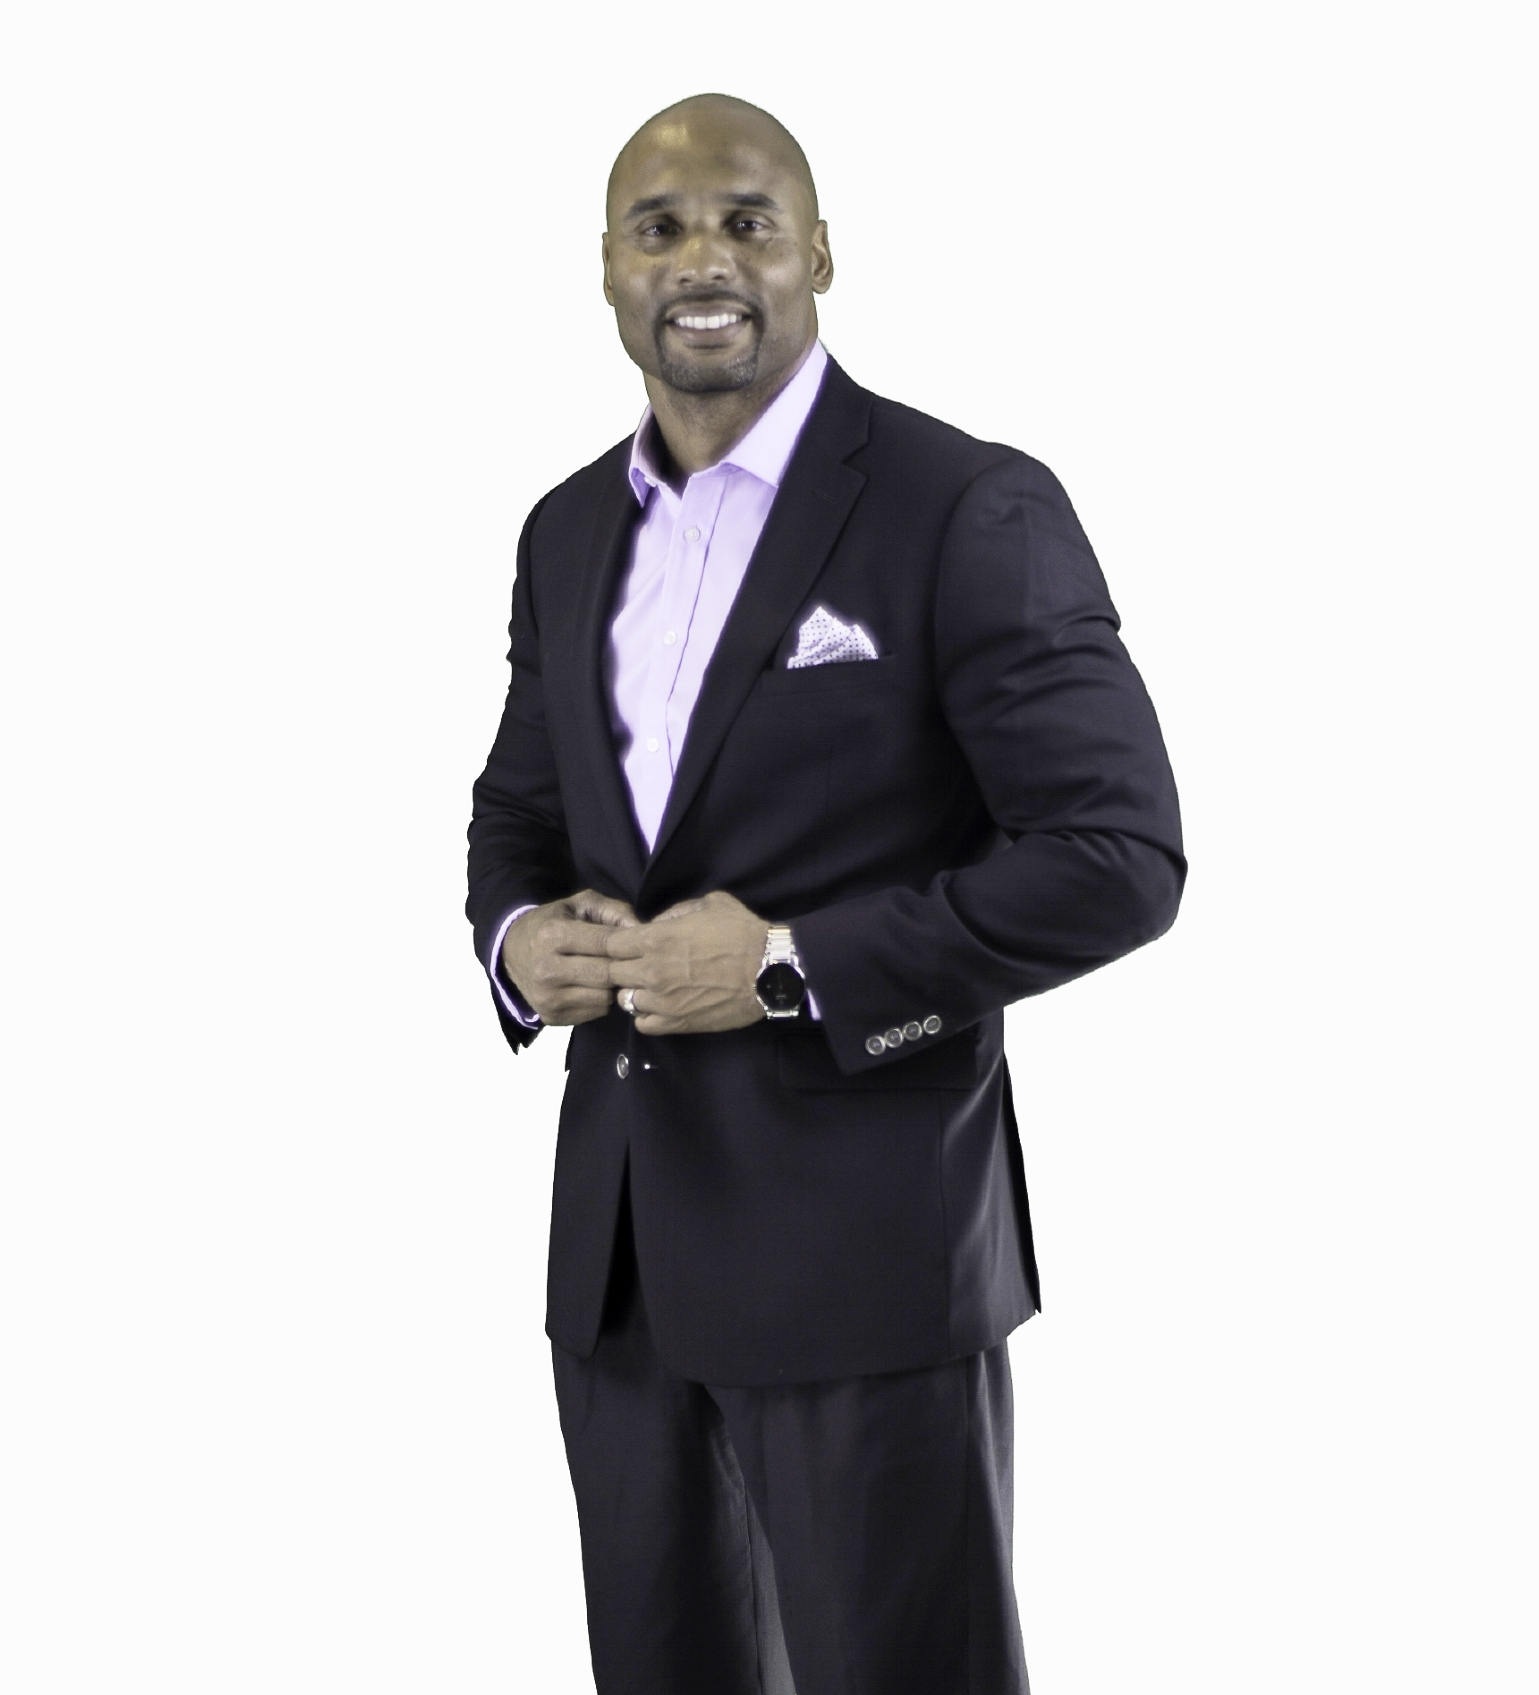 From the NFL Grid-Iron to businesses across the country and world,Donovin Darius brings his passion, his delivery style and high performance expertise to help organizations achieve their goals of going to the next level.